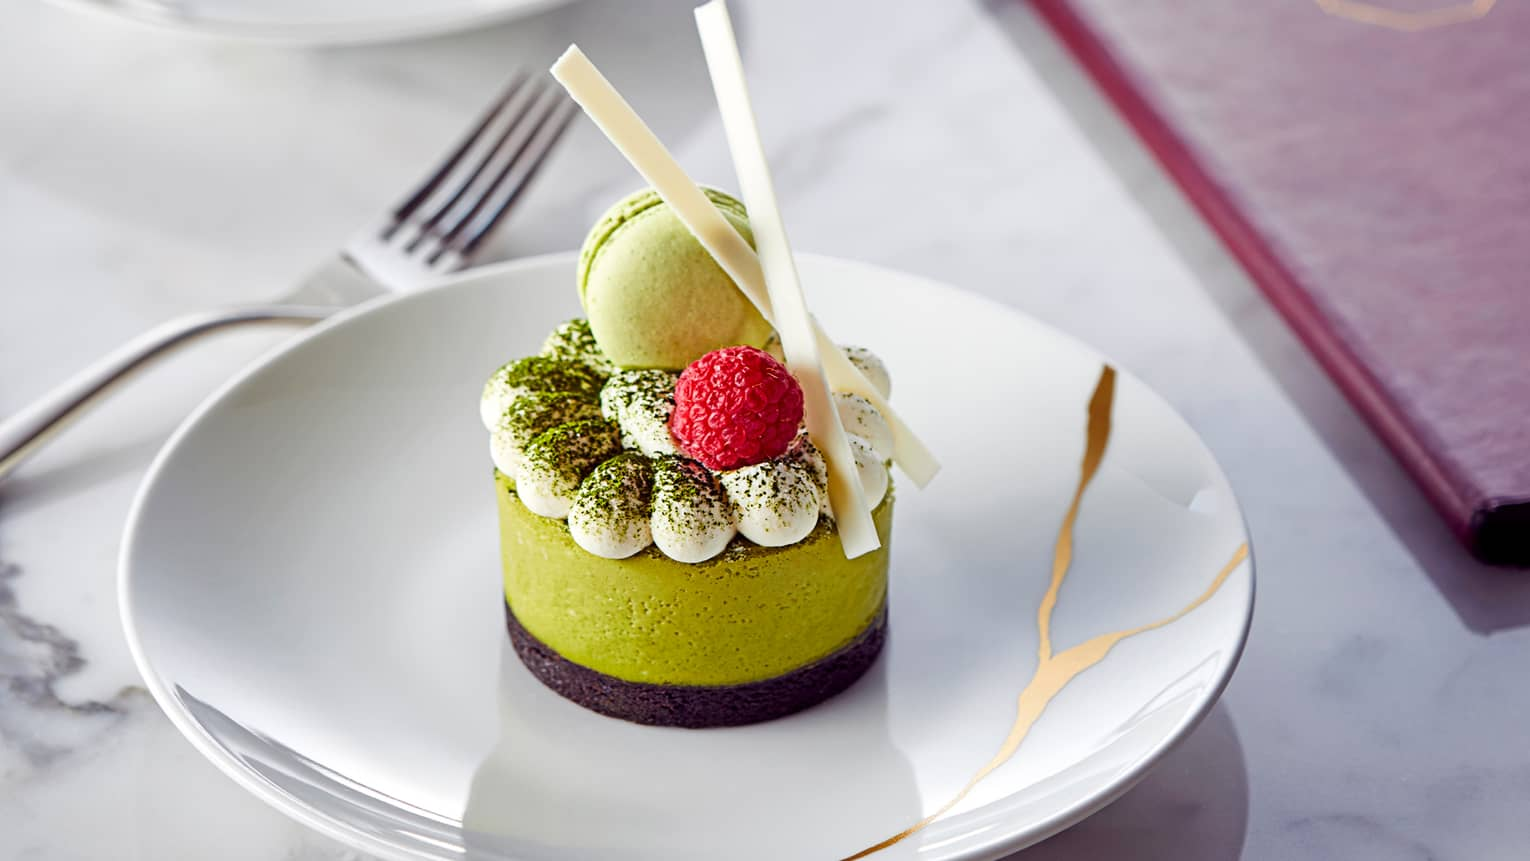 Close-up of green gourmet dessert cake by Maru menu